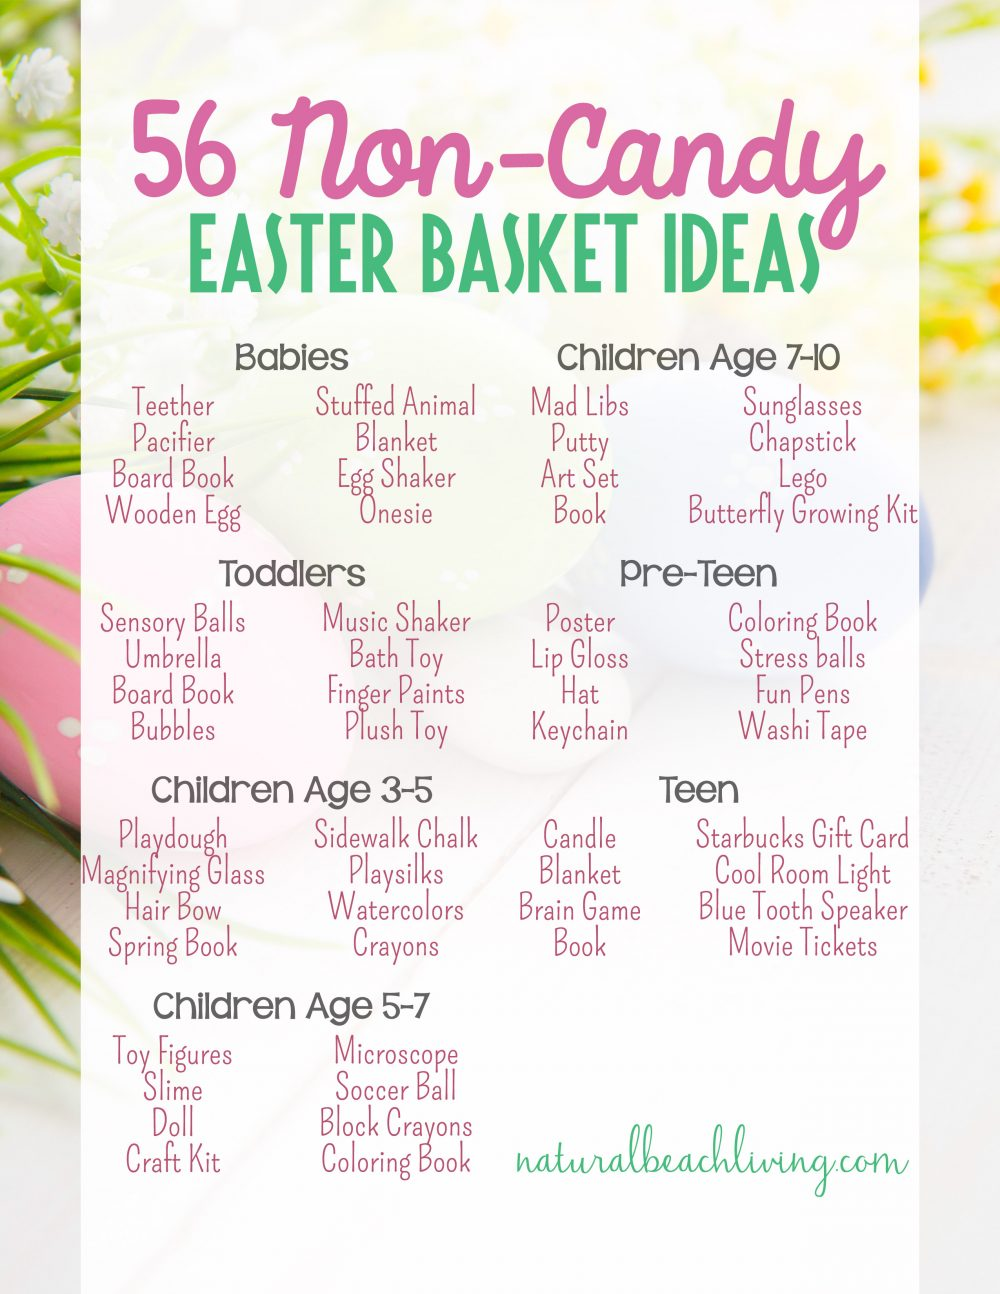 Non-candy ideas for Easter, Free printable, The Best Easter Egg Potato Stamp Ideas for Kids, Great Easter Craft, Potato Stamping, Art for preschoolers and Spring Activities for Kids